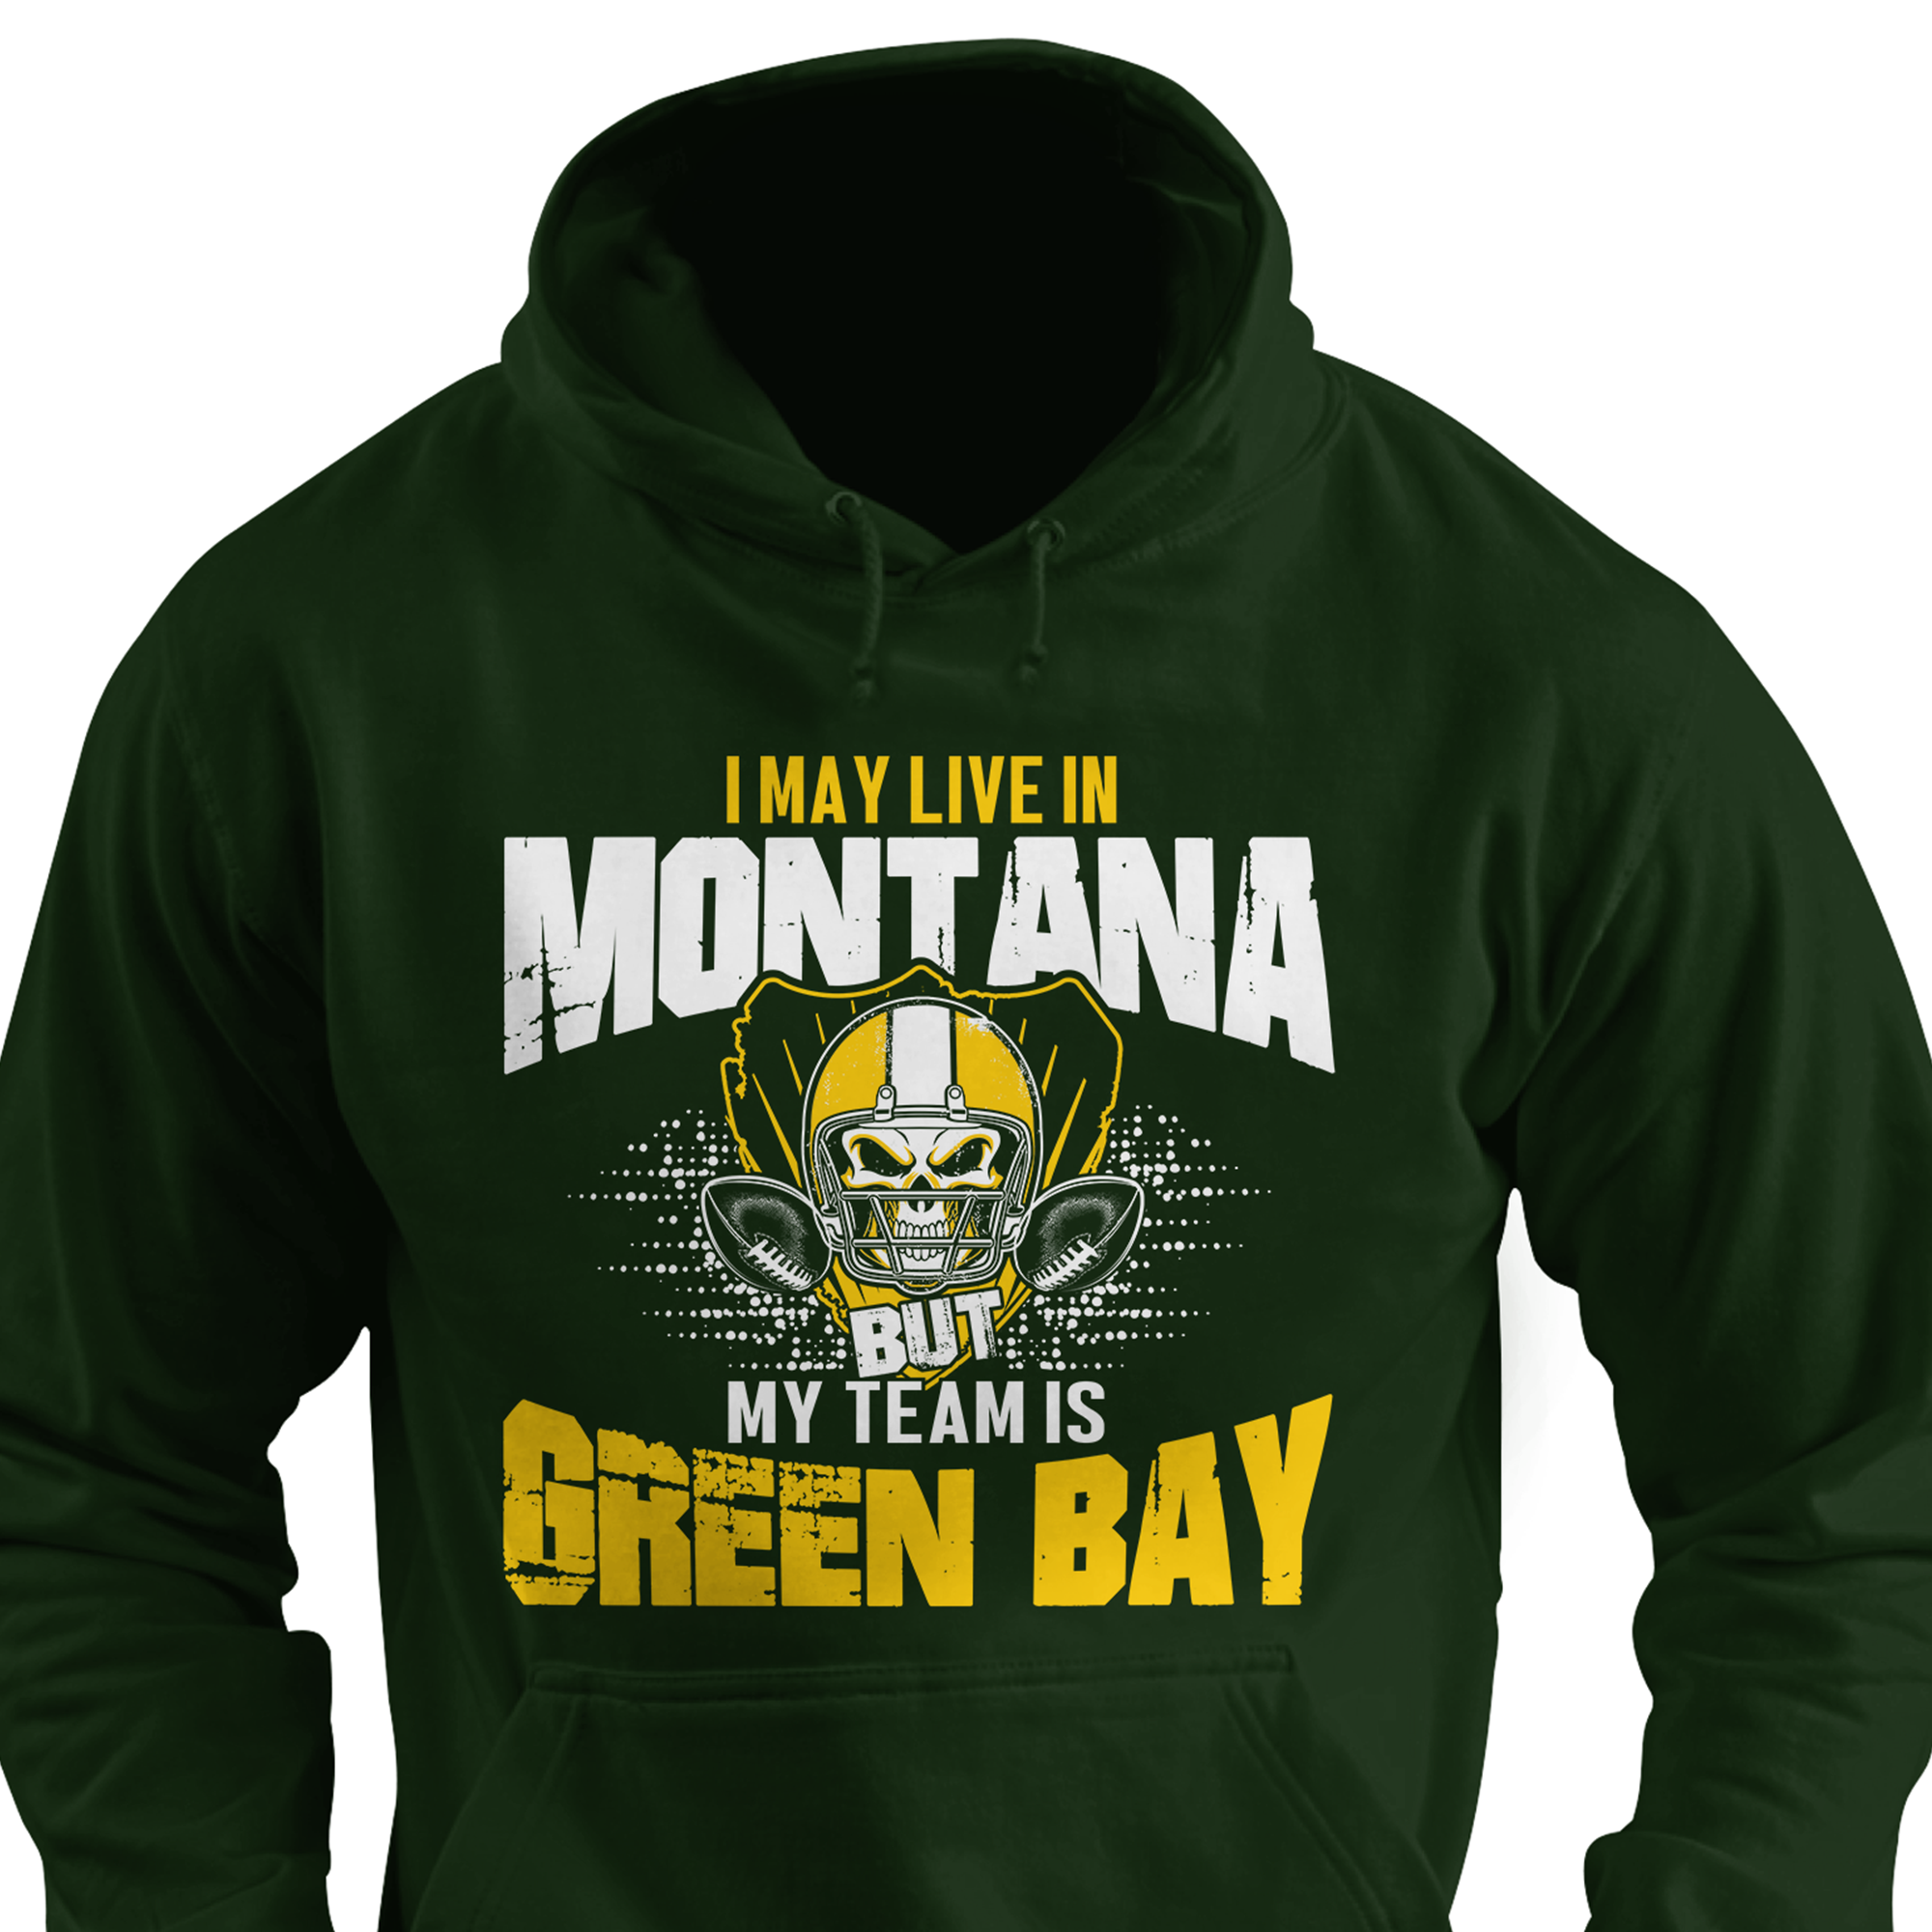 I May Live in Montana but My Team is Green Bay